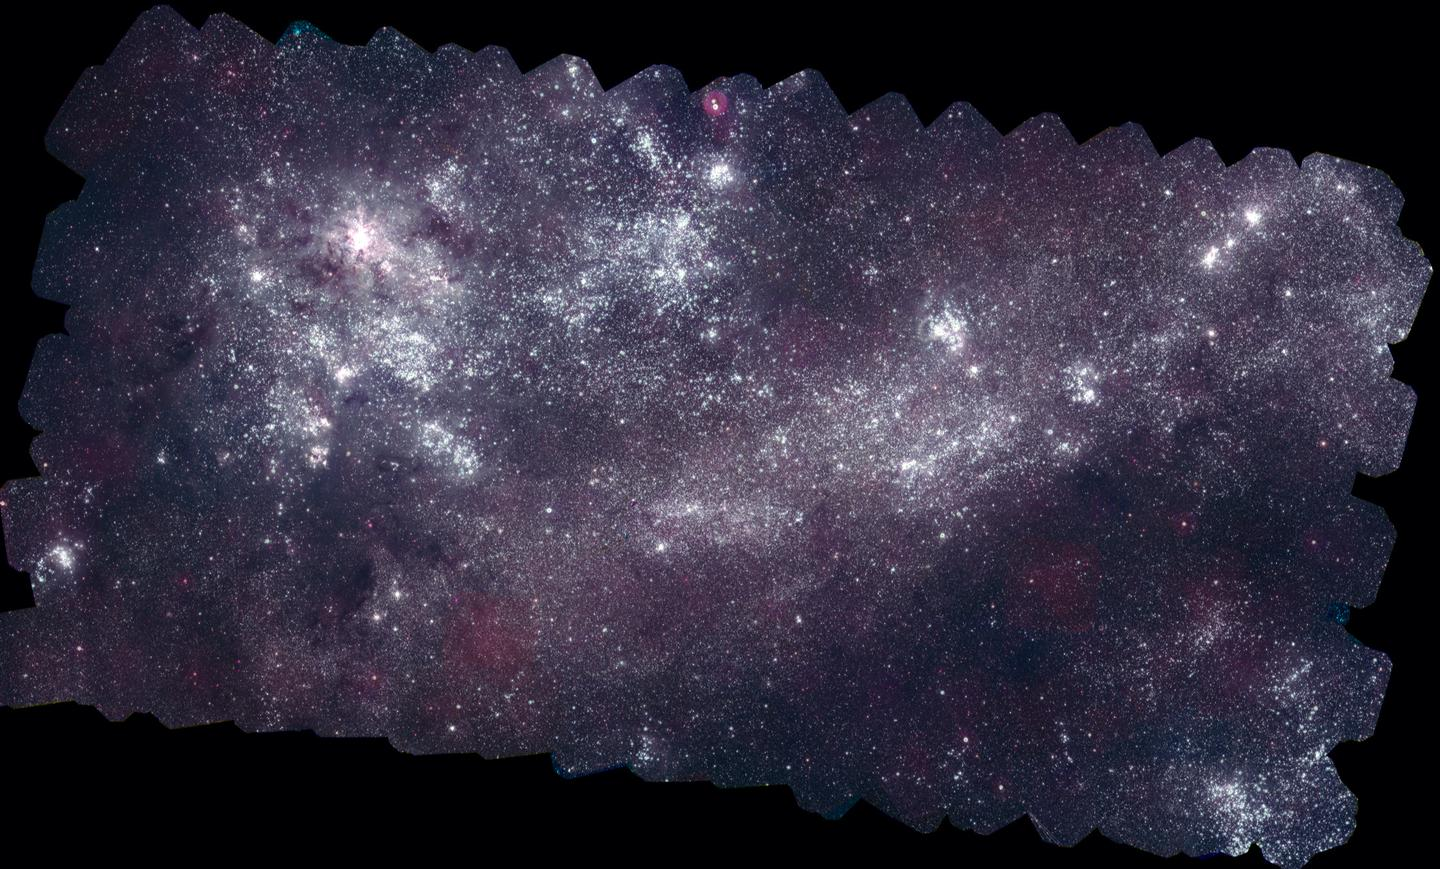 The Large Magellanic Cloud as taken by the Swift satellite's Ultraviolet/Optical telescope (image: NASA)